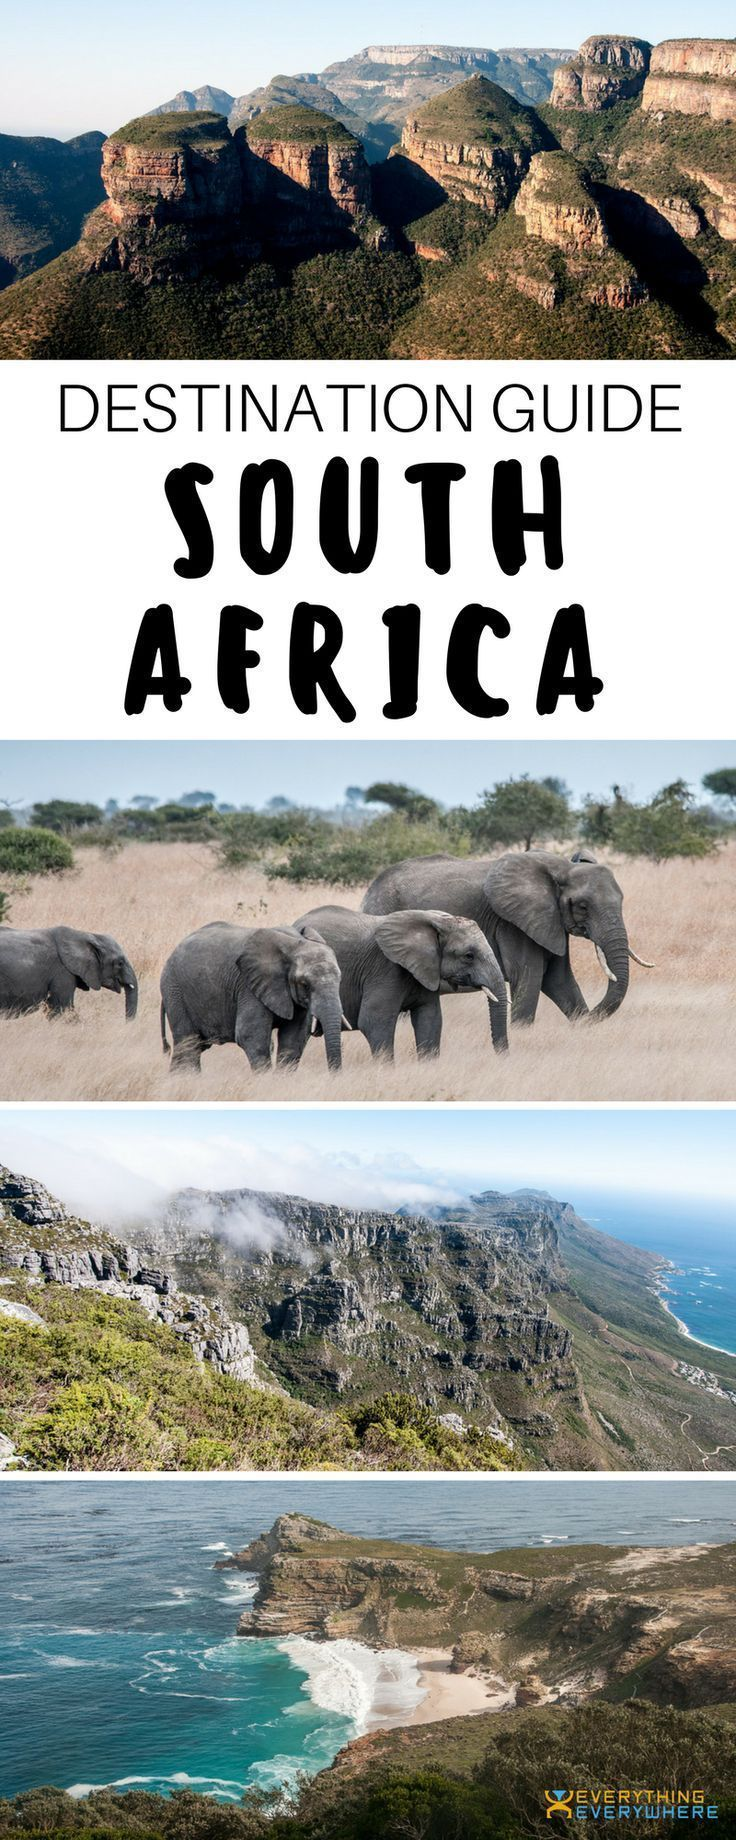 A complete guide to travel in South Africa. Top destinations and things to do including Kruger National Park, Table Mountain, Robben Island and more + Best South African food and cuisine and practical tips for your trip. | Everything Everywhere Travel Blo